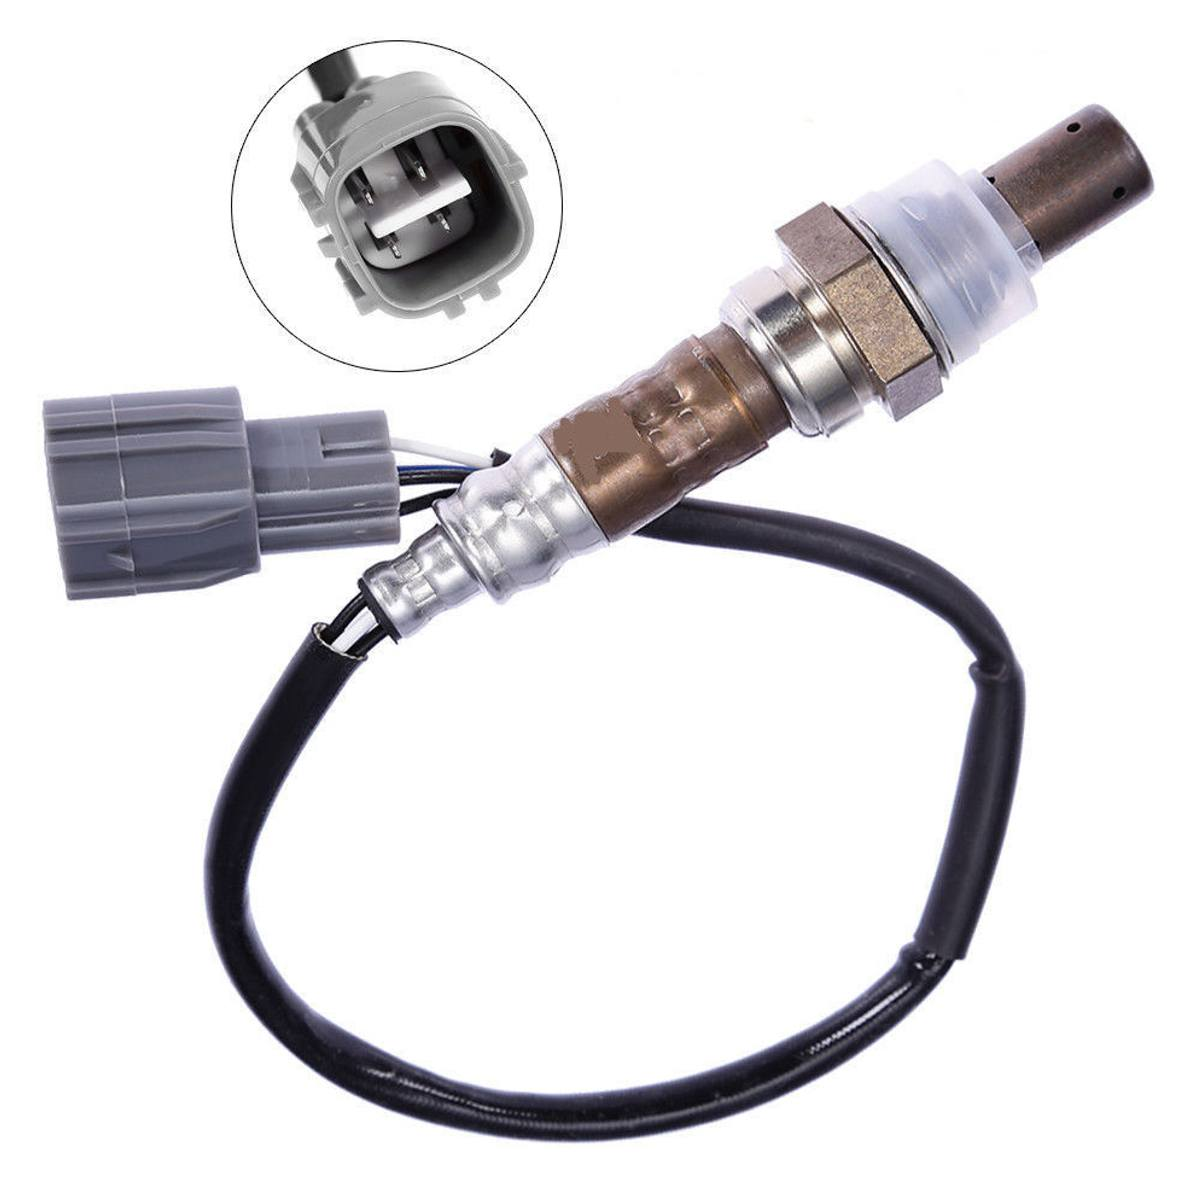 Air Fuel Ratio O2 Oxygen Sensor SG848 89467-48011 234-9009 For Toyota Lexu RX300 G1R title=